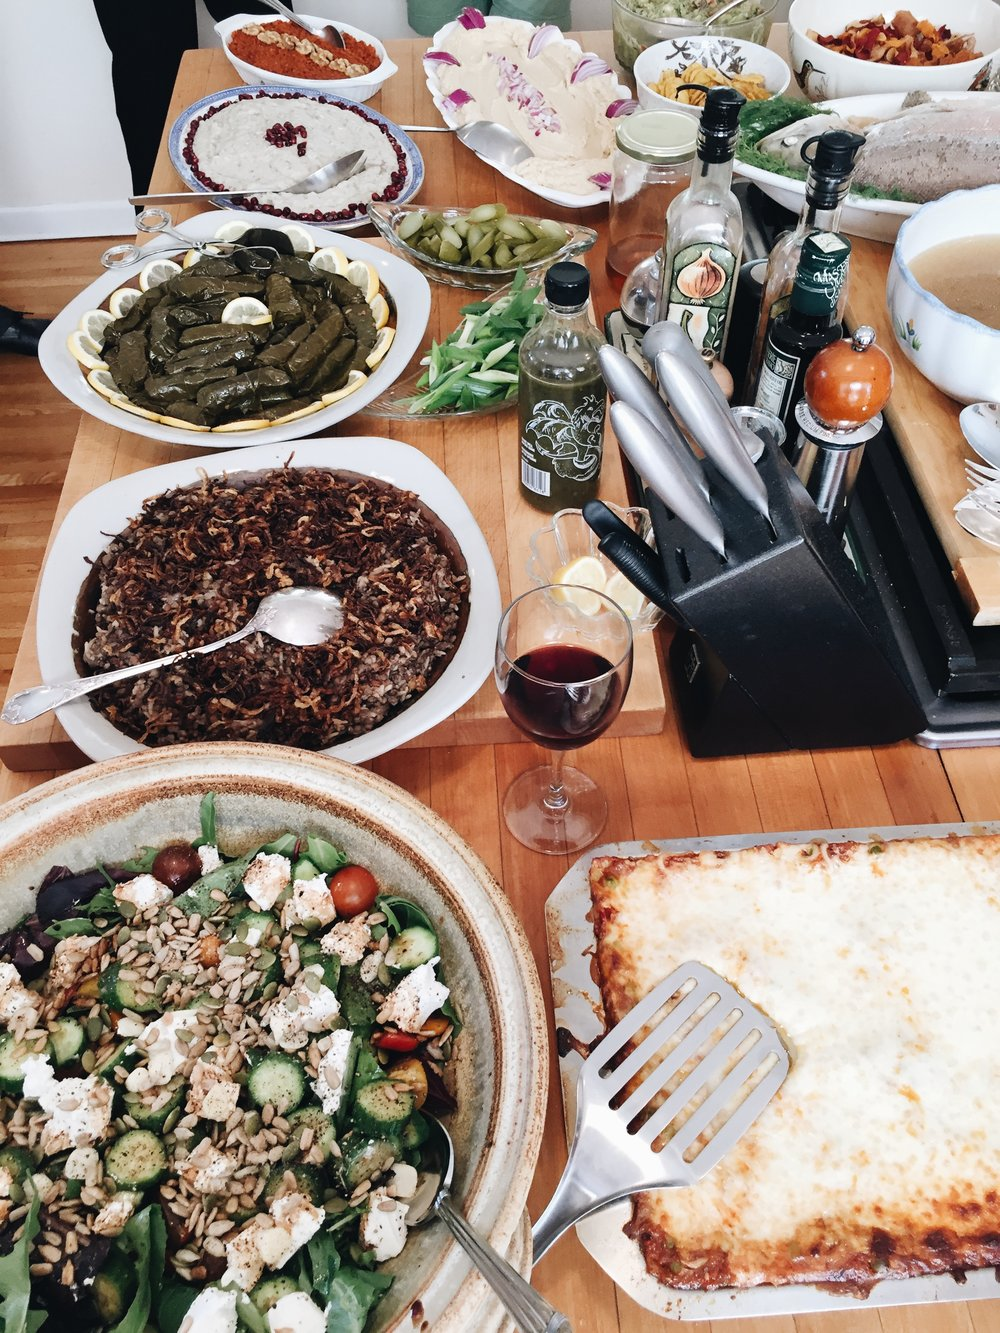 Dad's cooking! Being half-lebanese, we eat a whole variety of dishes on big occasions and celebrations. Grape leaves, lentils, lasagna, hummus, baba ganoush, mixed salad, fish, and a whole lot of other very yummy foods!   Hope to share some of these delicious recipes soon!